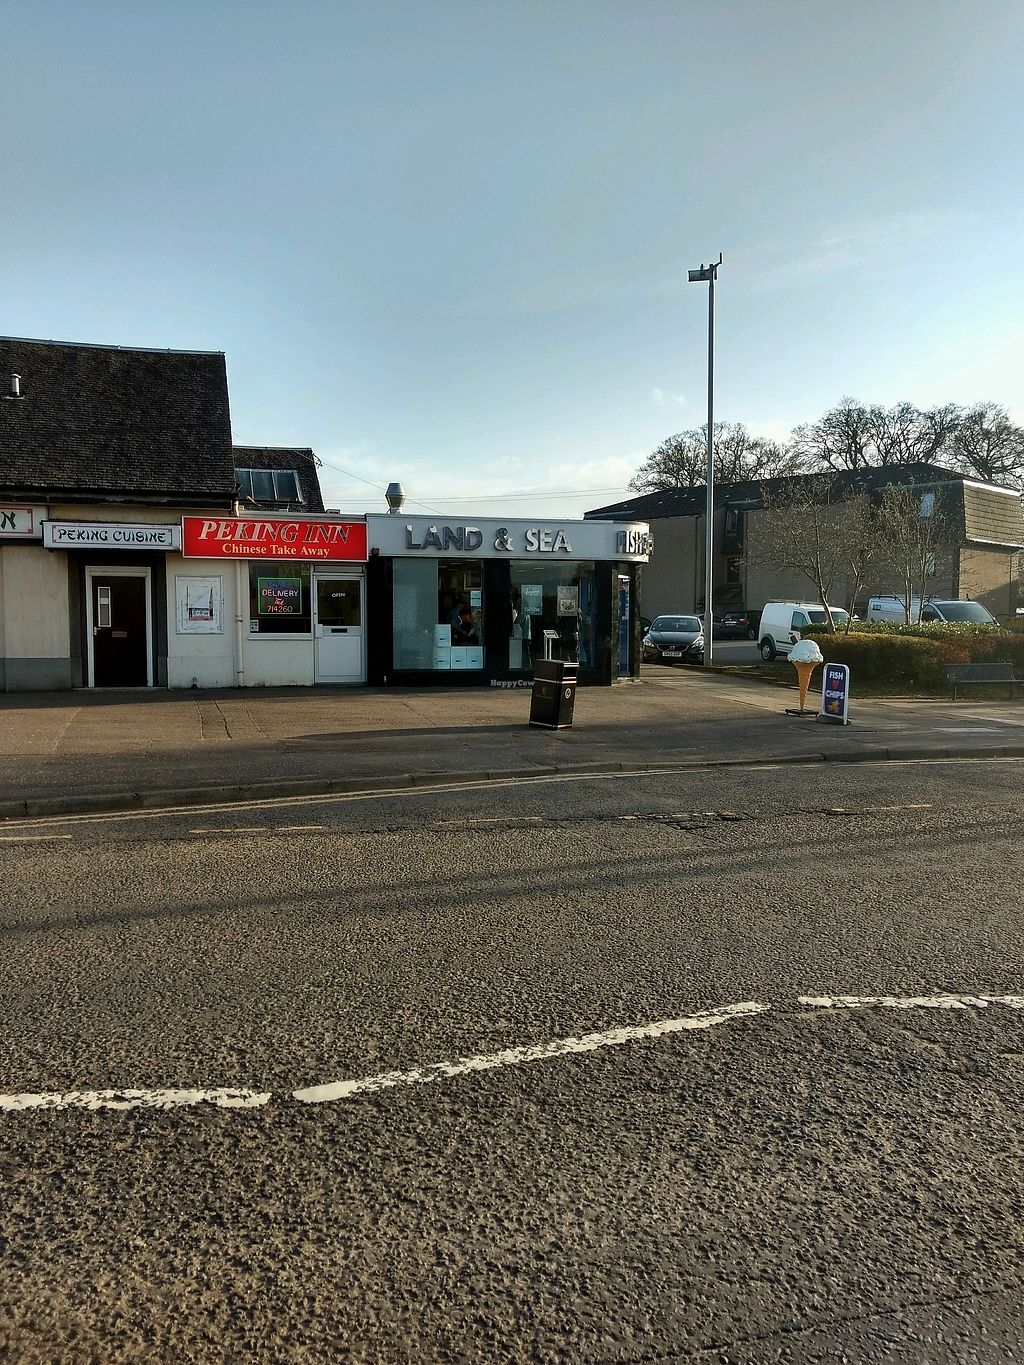 """Photo of Land and Sea Fish and Chip Shop  by <a href=""""/members/profile/craigmc"""">craigmc</a> <br/>over the road <br/> April 17, 2018  - <a href='/contact/abuse/image/91076/387369'>Report</a>"""